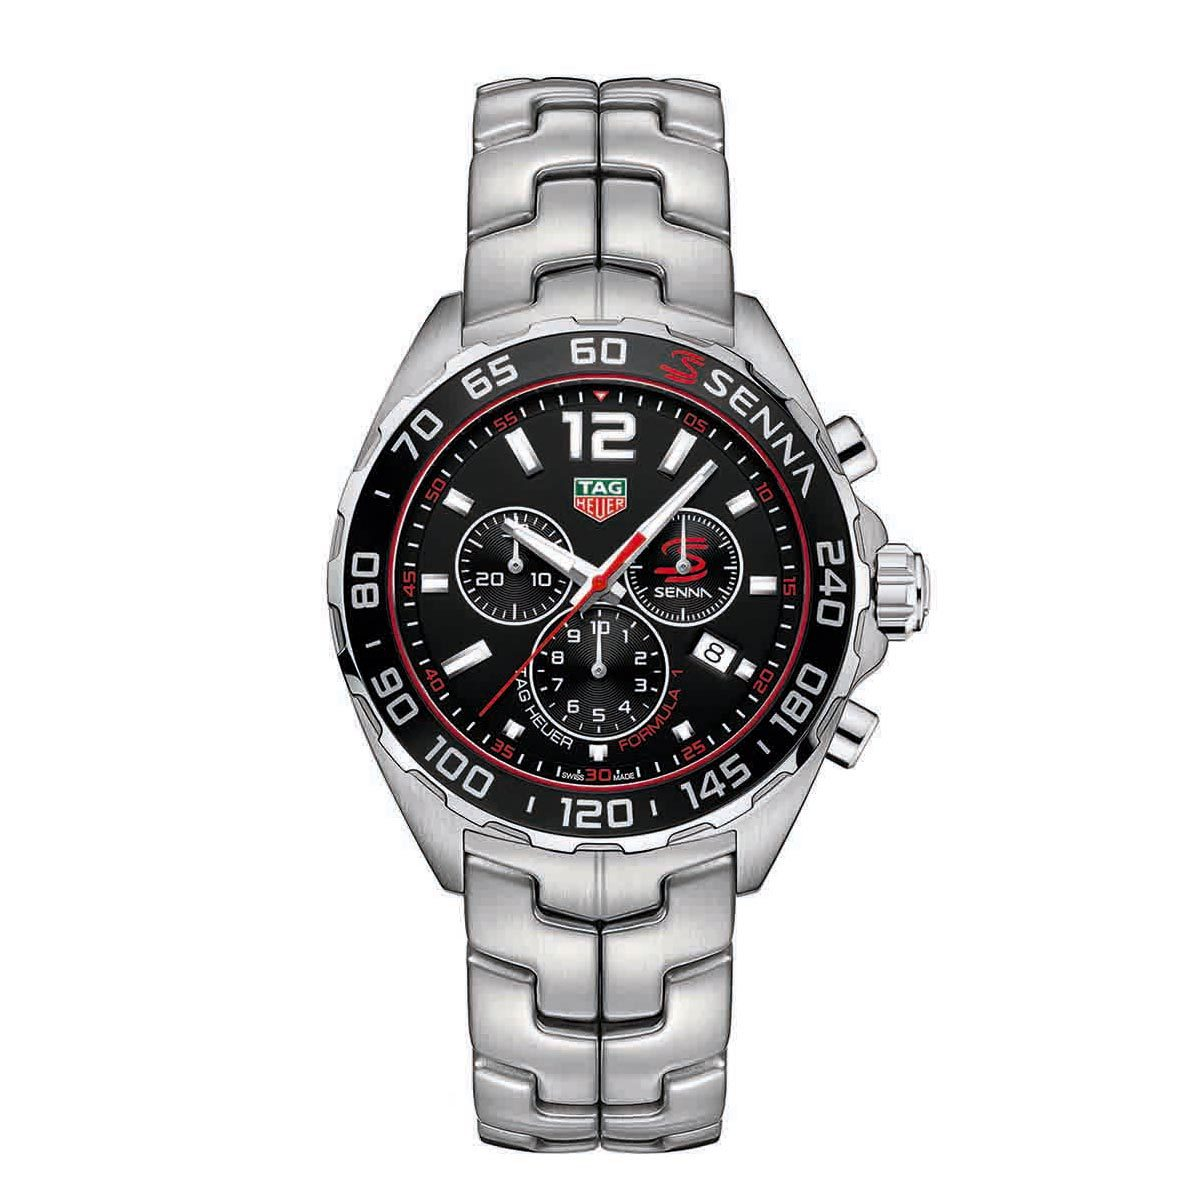 TAG Heuer Formula One Copy Watches UK With Black Dials Represented By Ayrton Senna